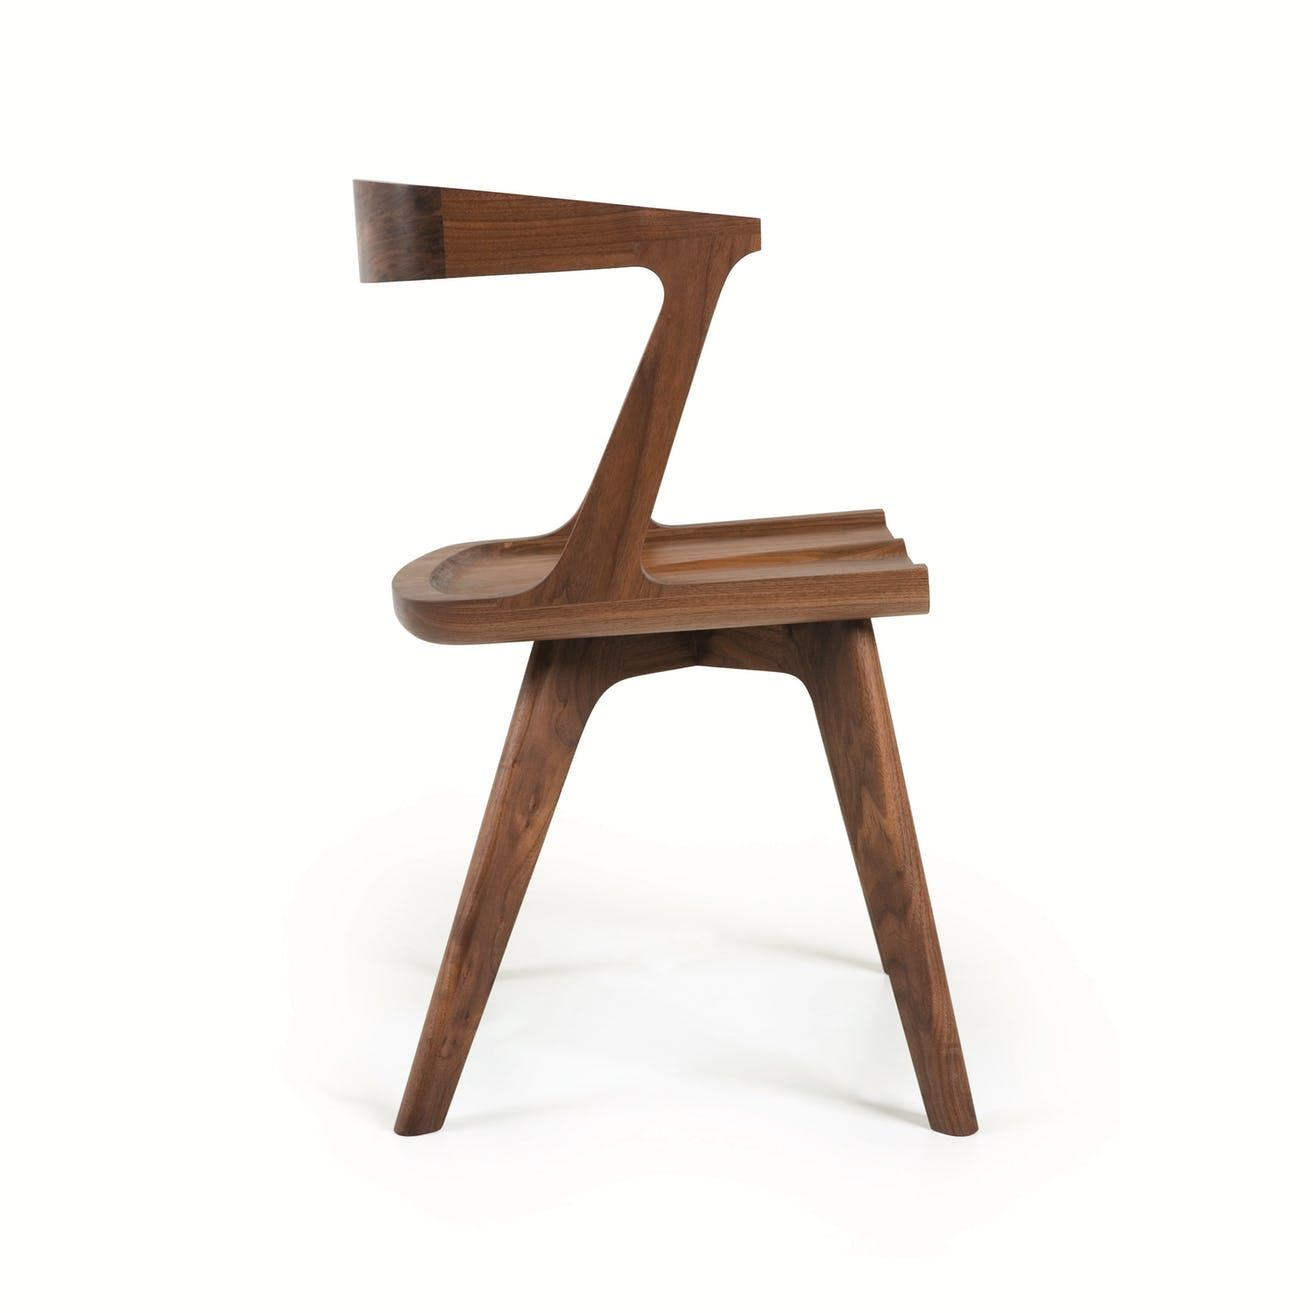 Colombo Dining Chair by De La Espada now available at Haute